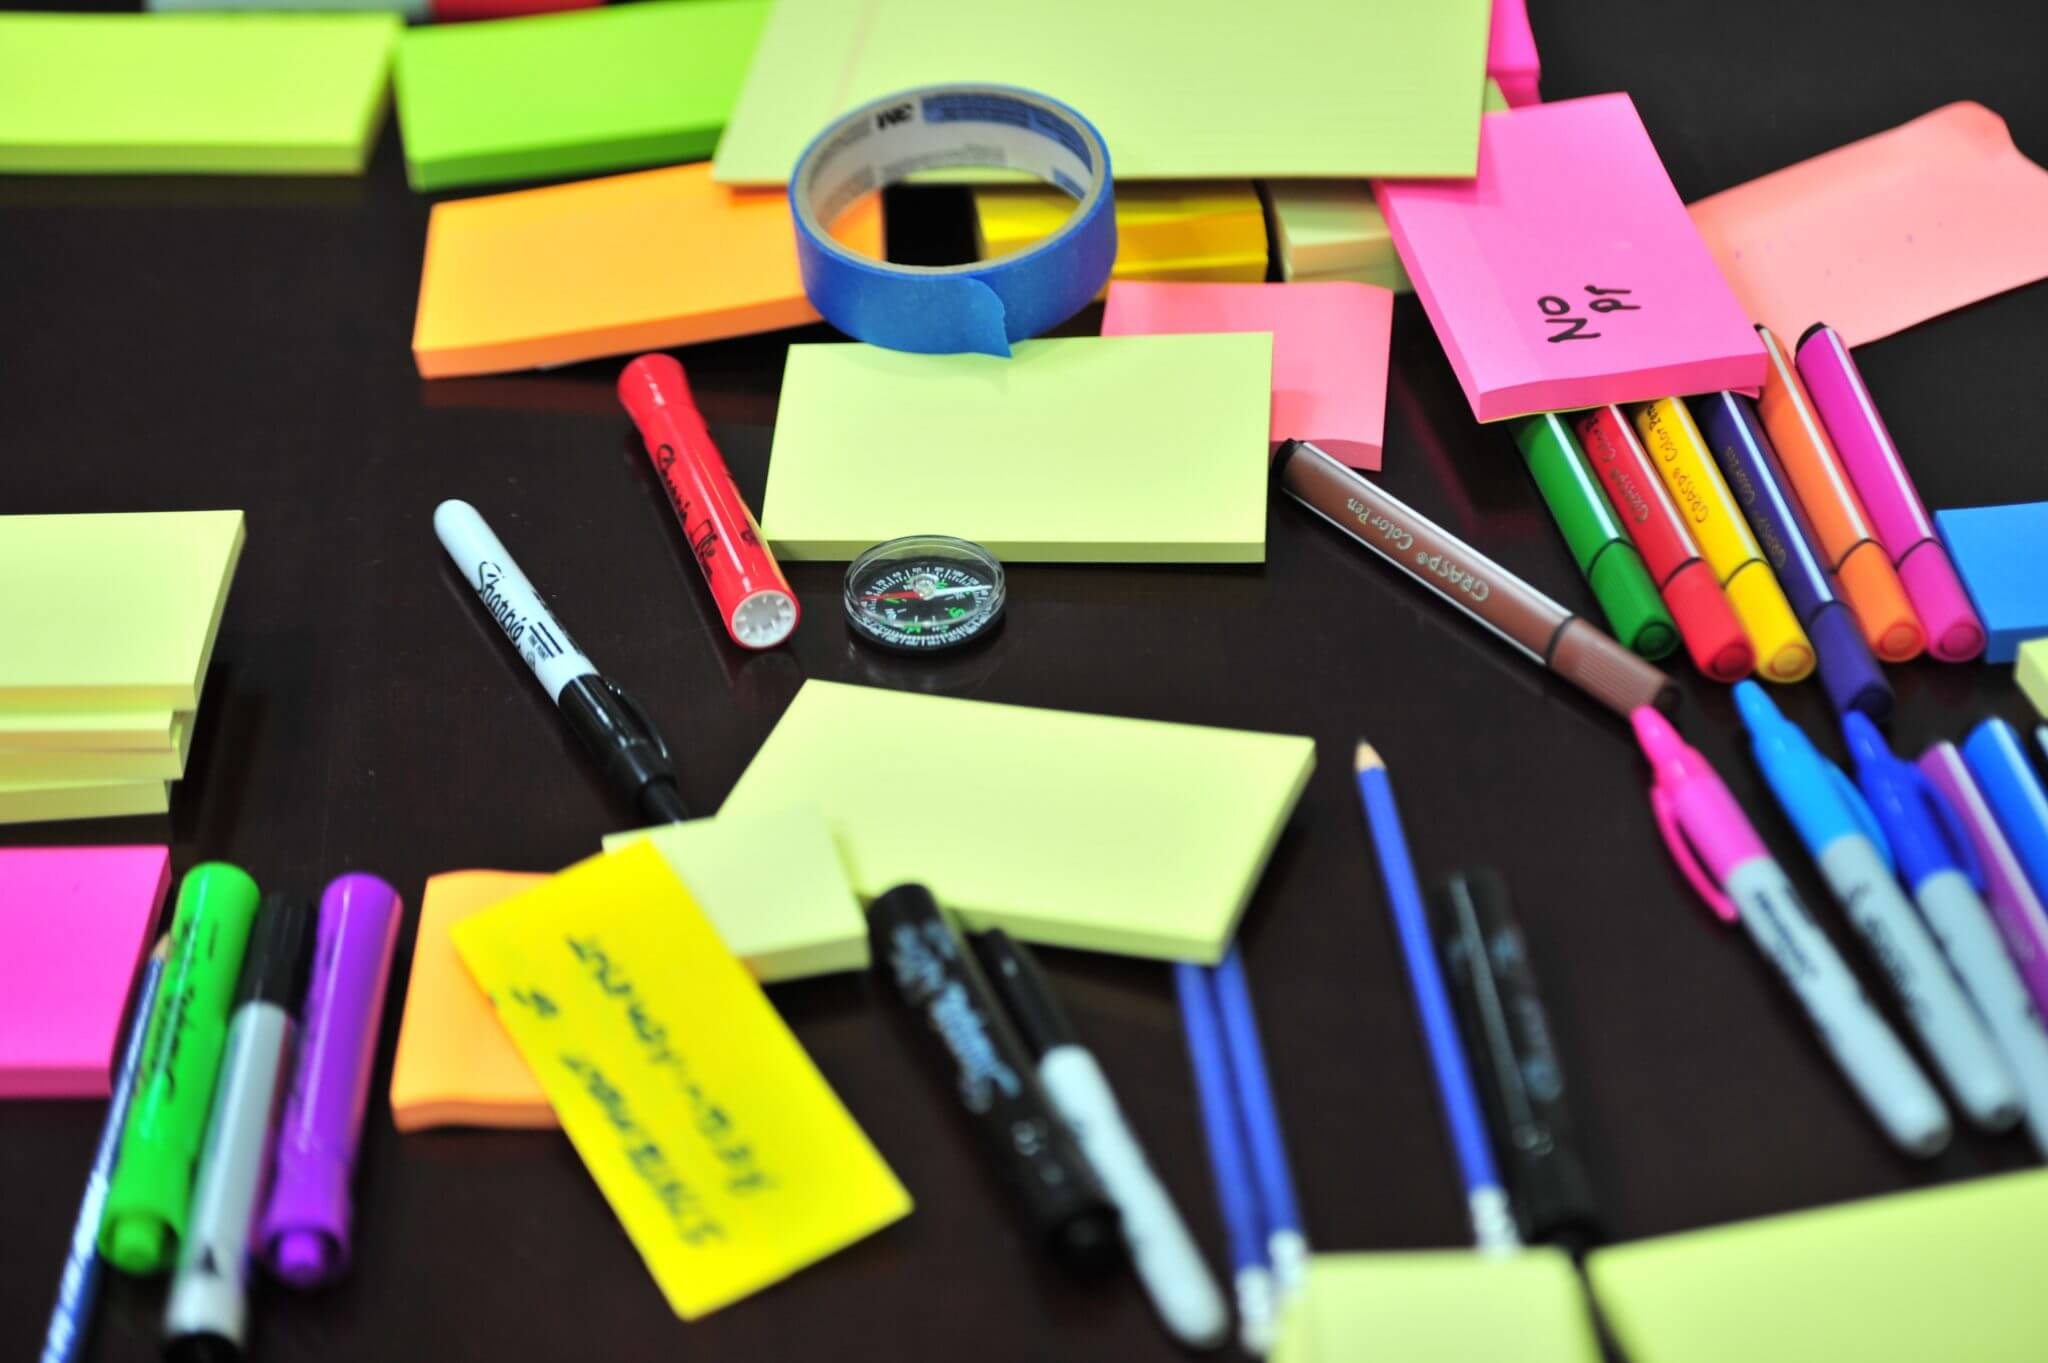 pencils, pens and post it notes spread out on a table